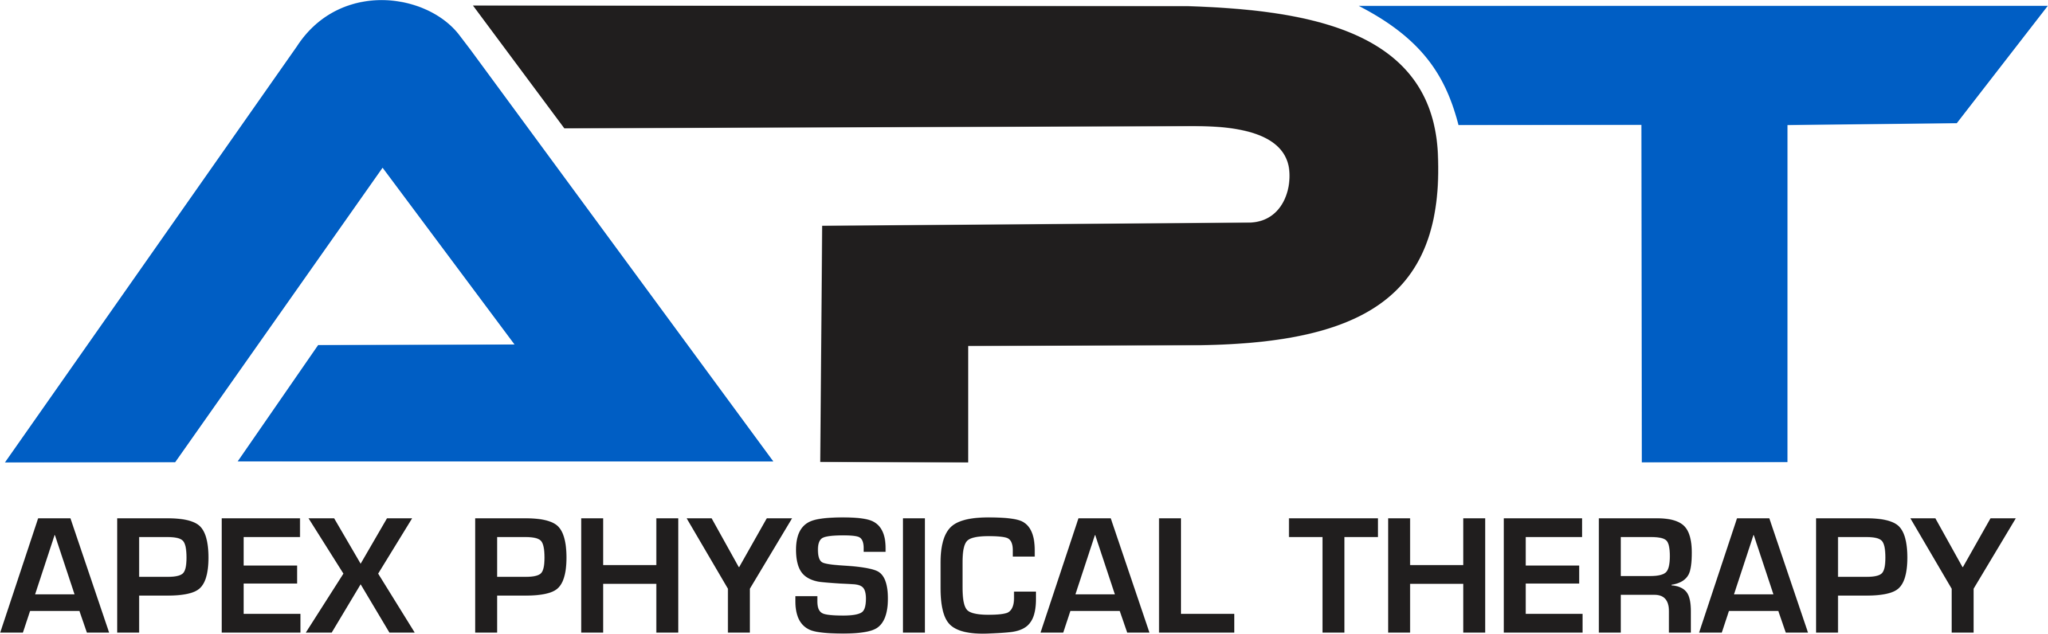 Apex Physical Therapy Shares the Traits of Reliable Physical Therapists